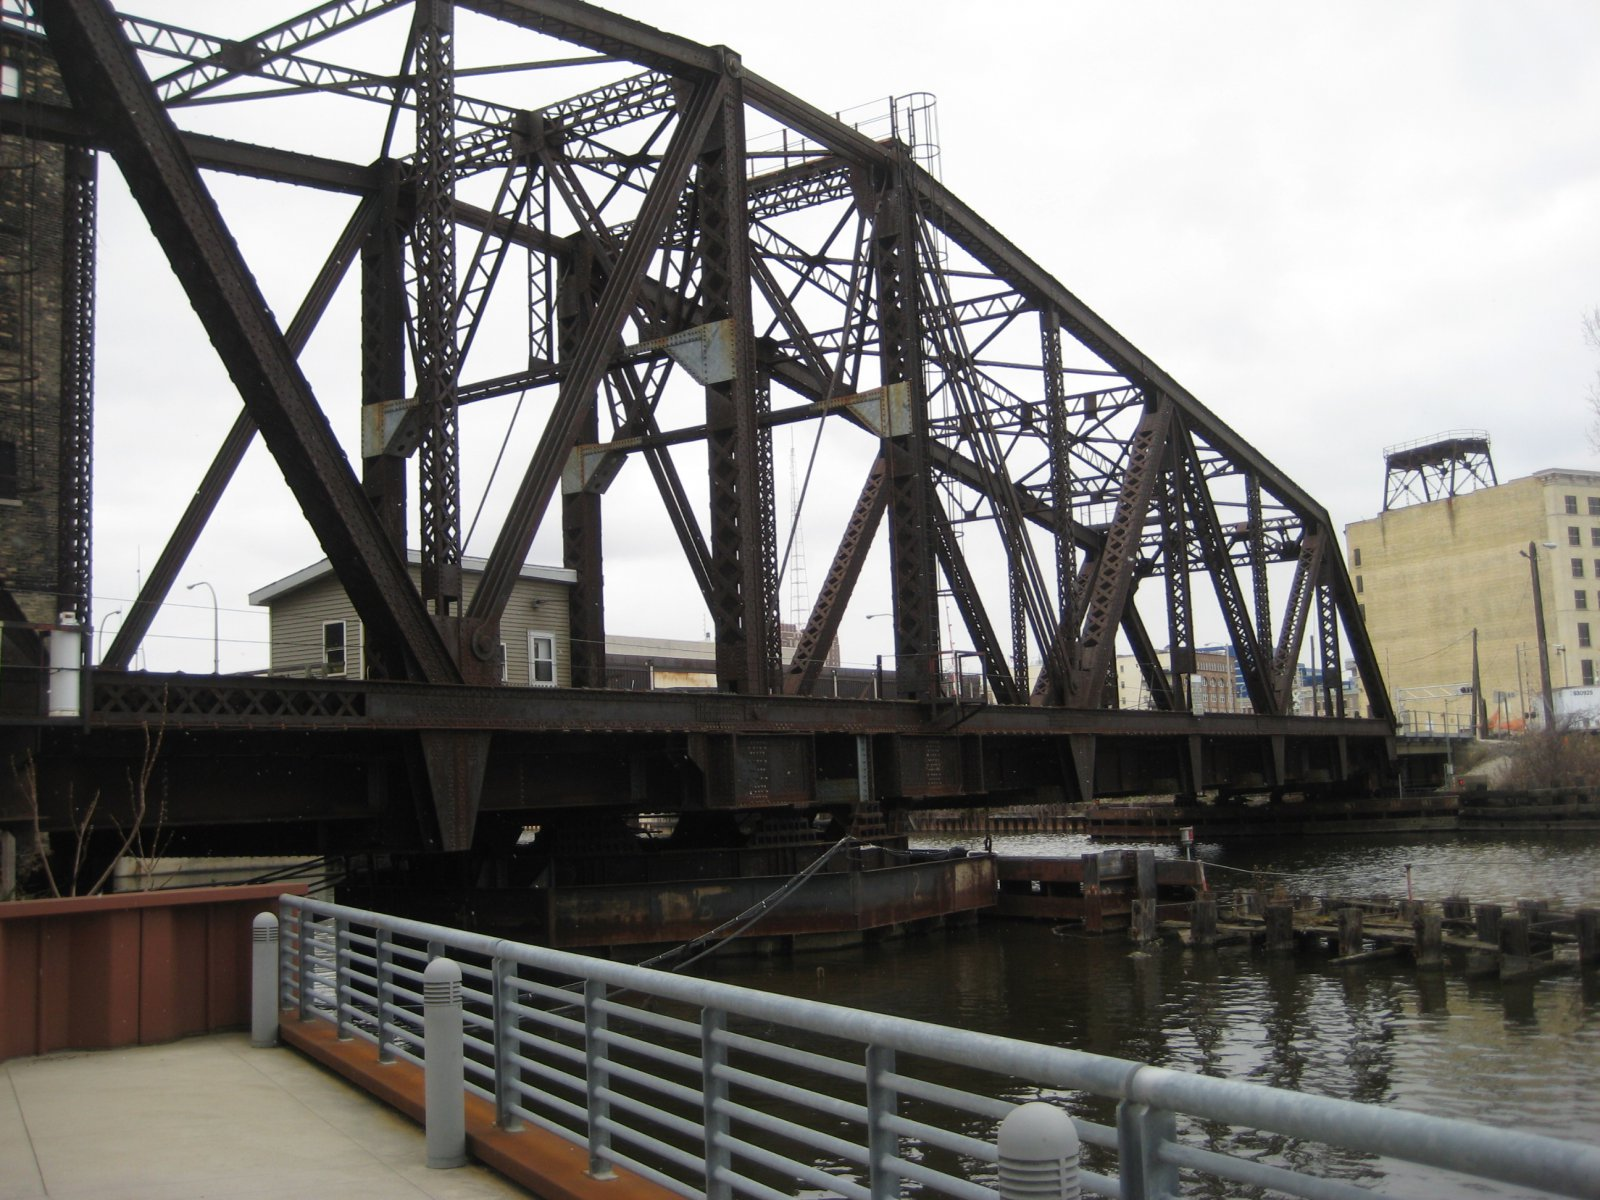 Train bridge next to The Point on the River.